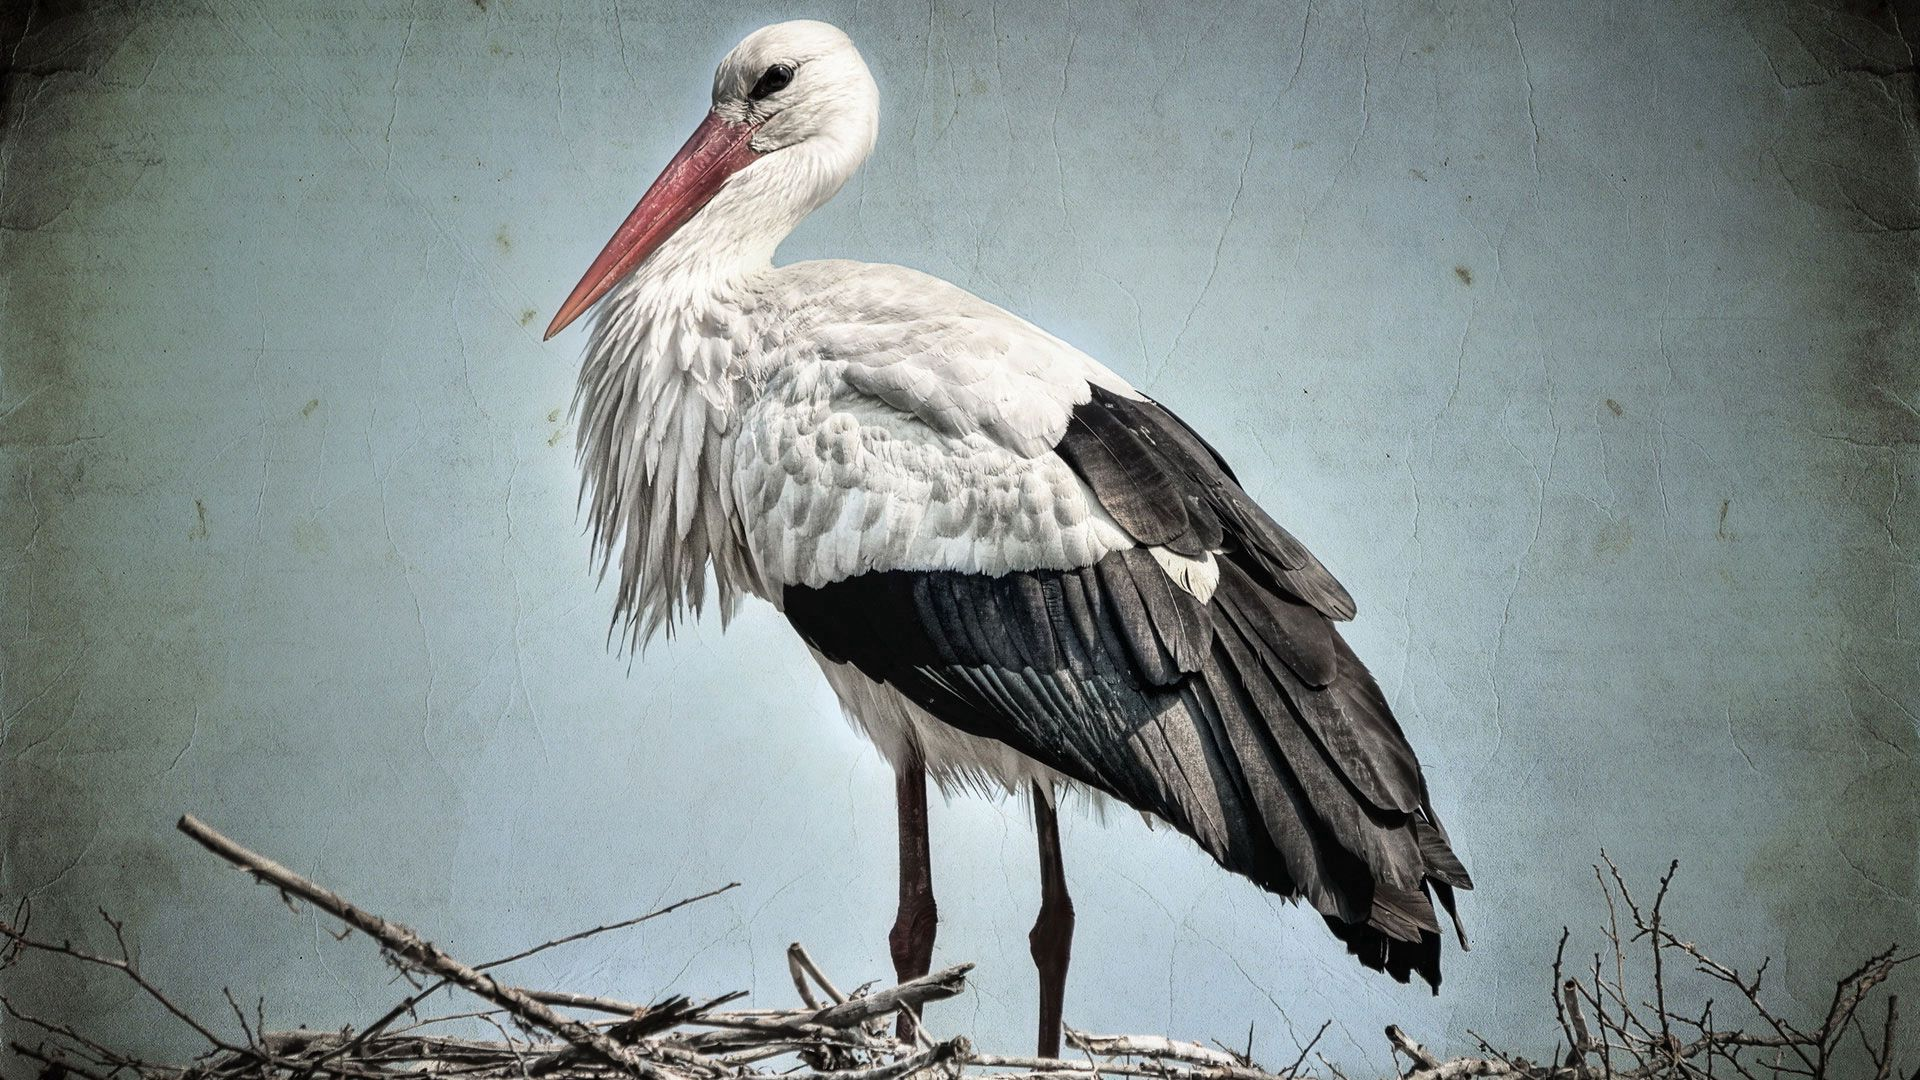 71857 download wallpaper Animals, Feather, Beak, Branches, Nest, Stork screensavers and pictures for free